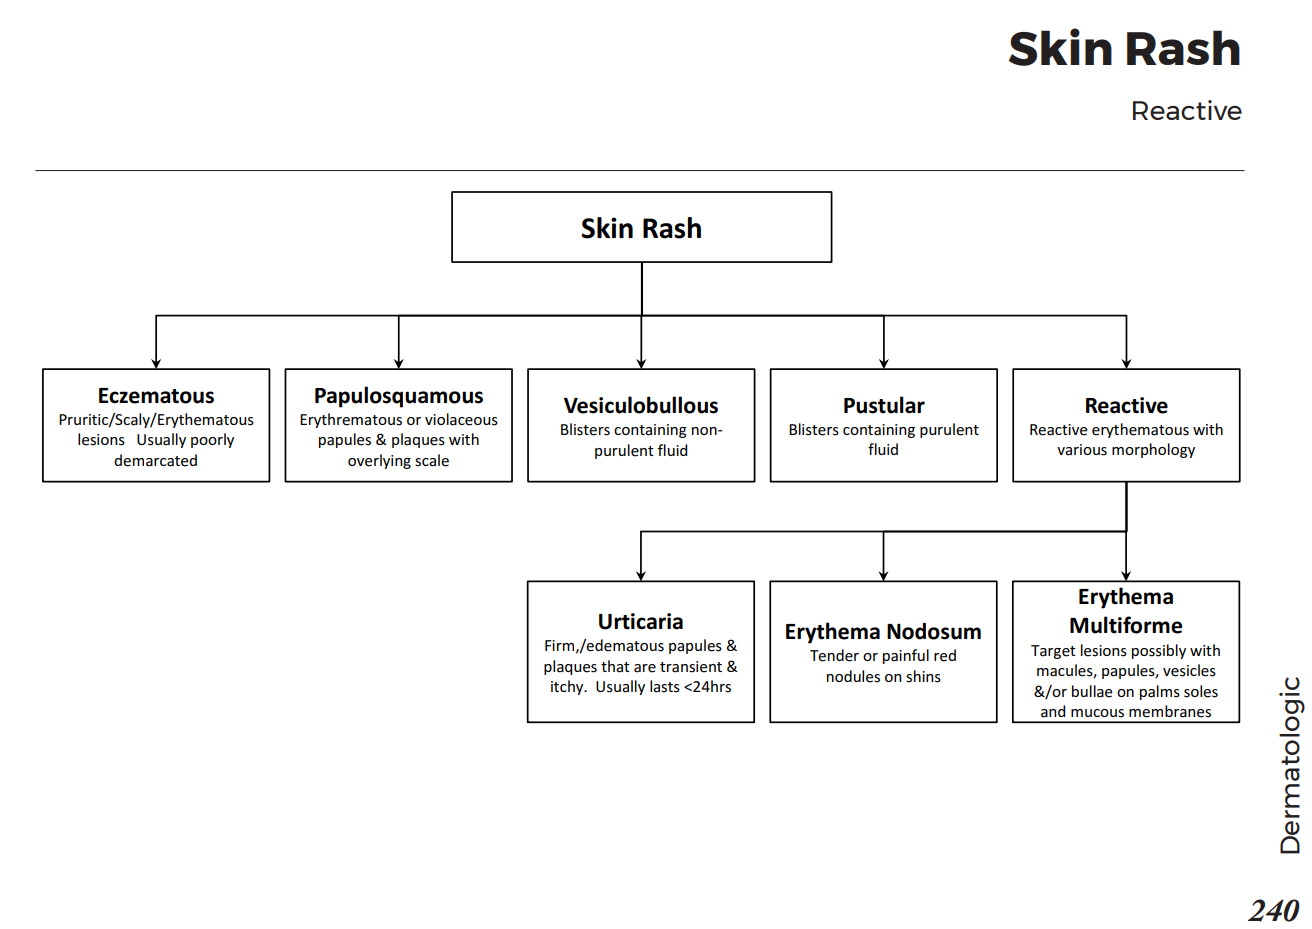 Reactive Skin Rash - Differential Diagnosis Algorithm Reactive erythematous  with various morphology •